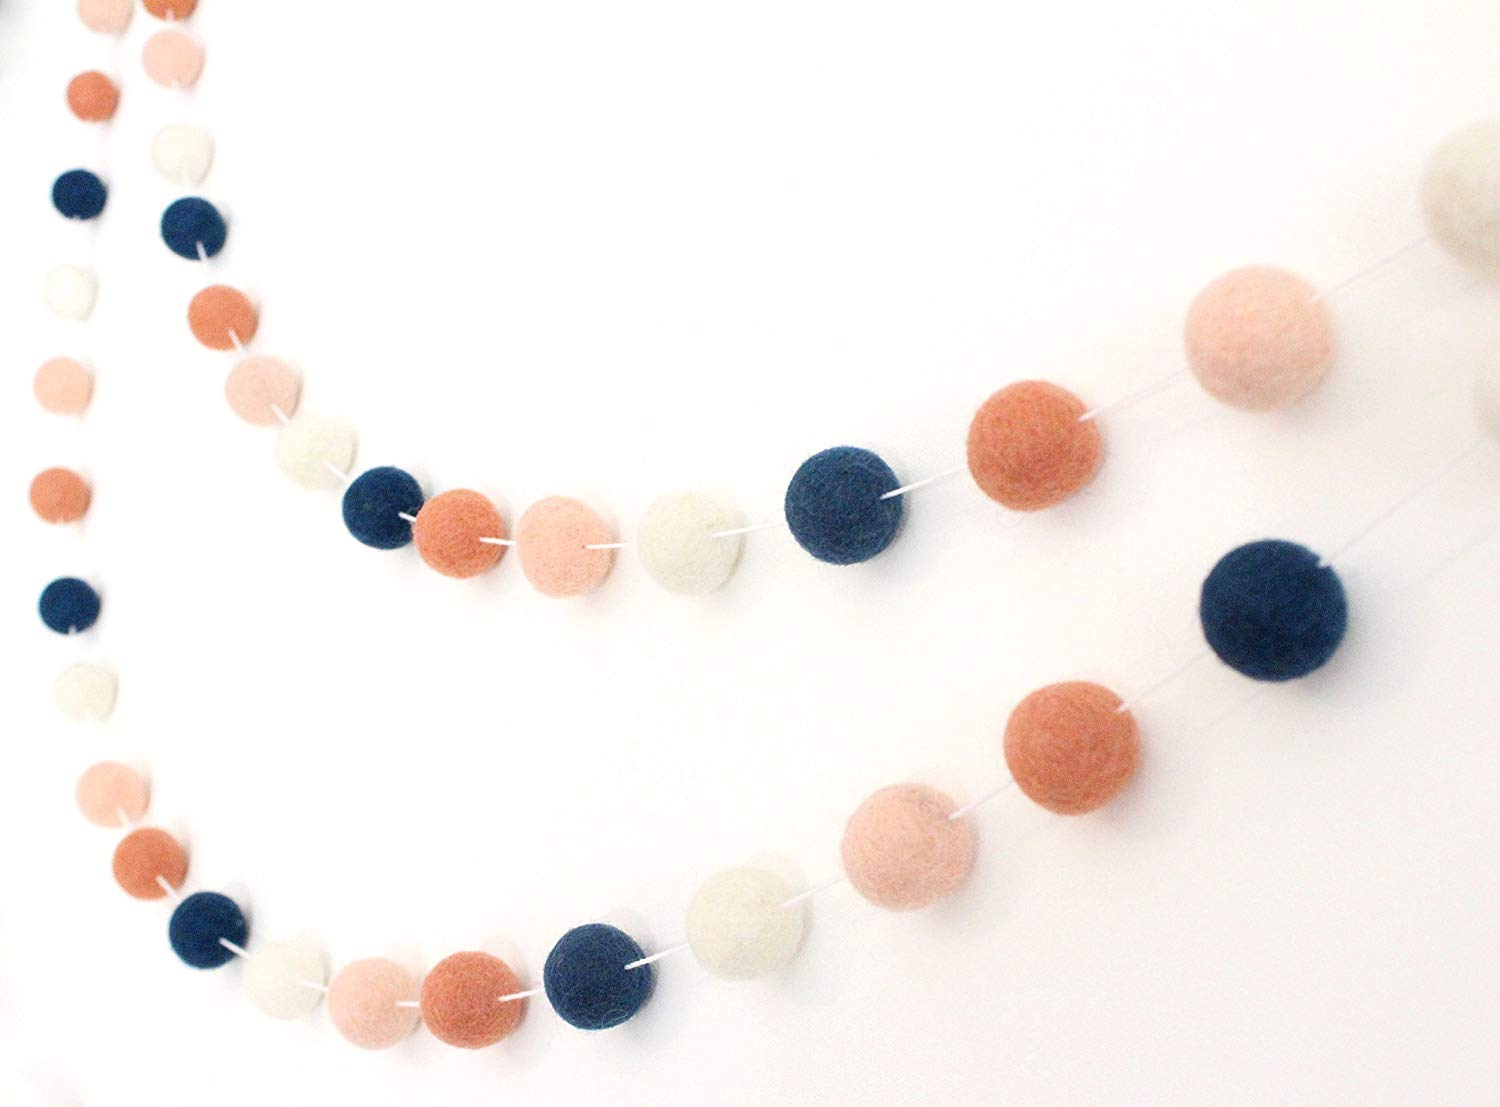 """Navy & Coral"" Handmade Wool Felt Ball Garland by Sheep Farm Felt- Apricot, Coral, Navy, and Ivory Pom Pom Garland. 2.5 cm balls."